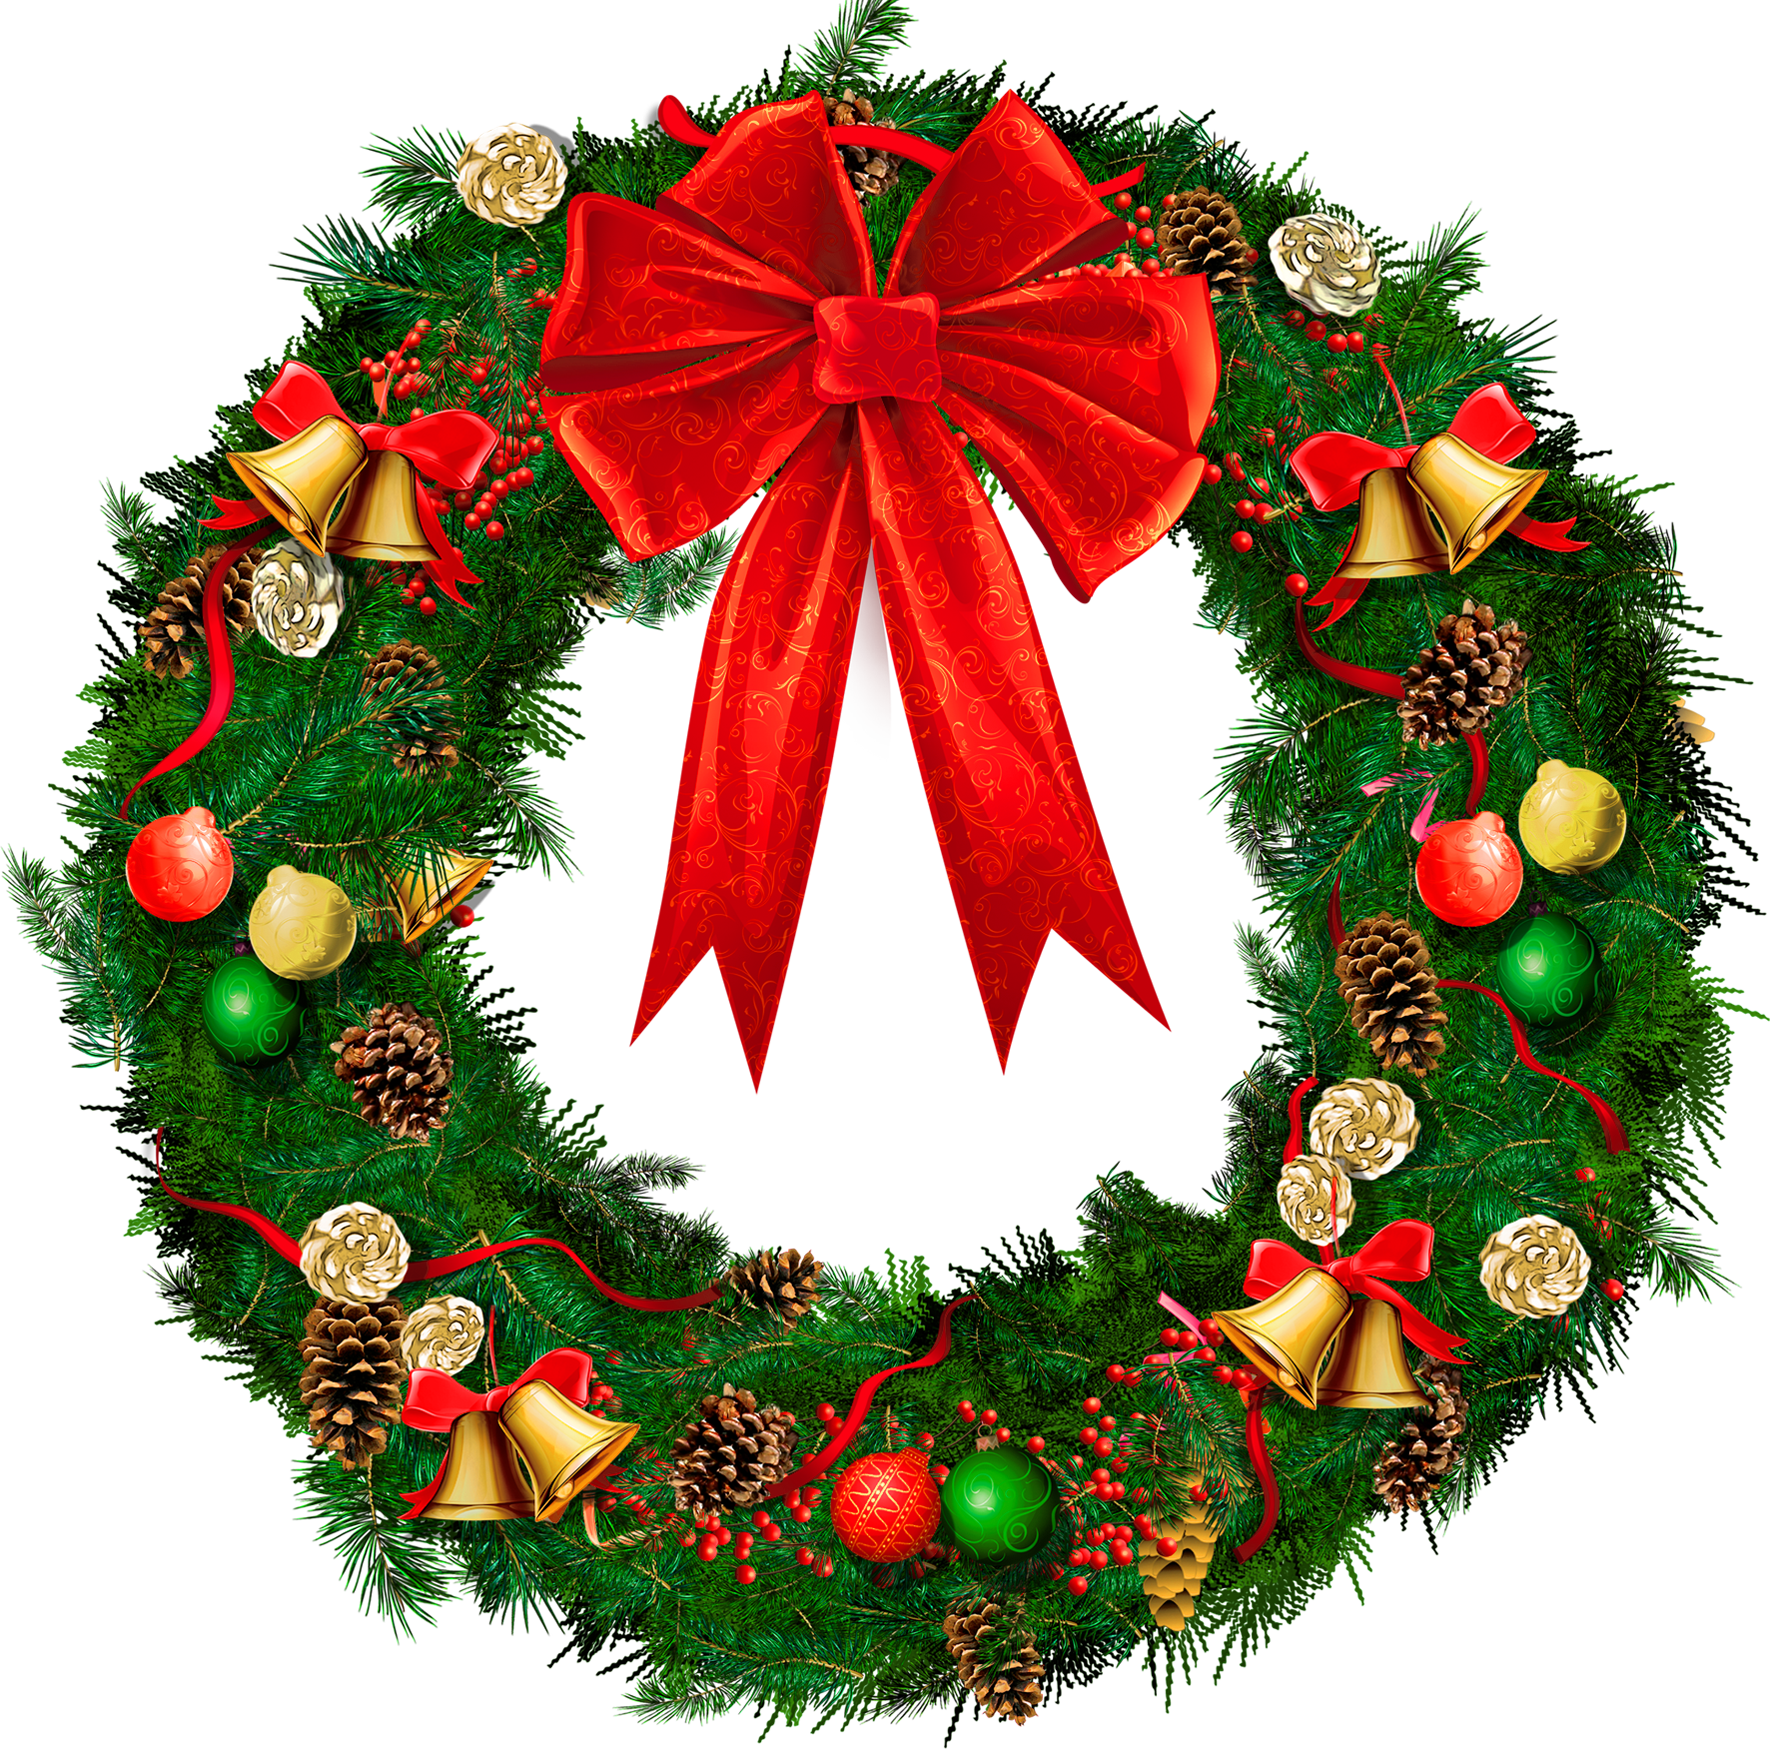 Christmas Wreaths Clip Art - ClipArt Best